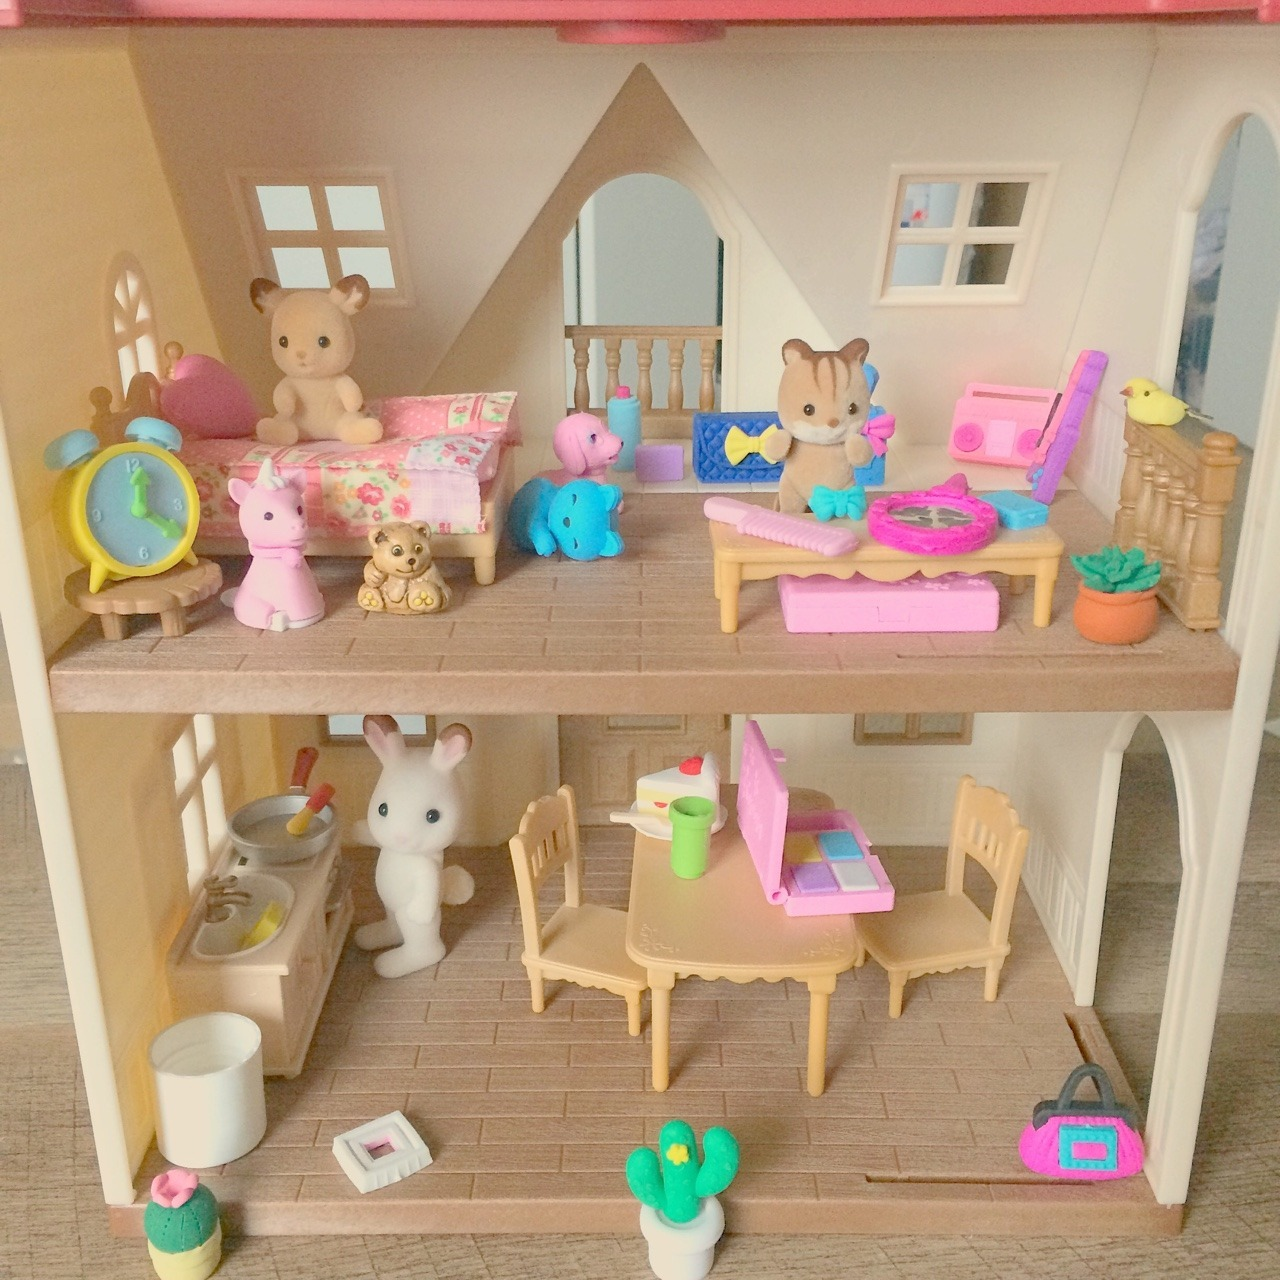 #finds#calico critters#sylvanian families#toys#mini#🌈#dollhouse